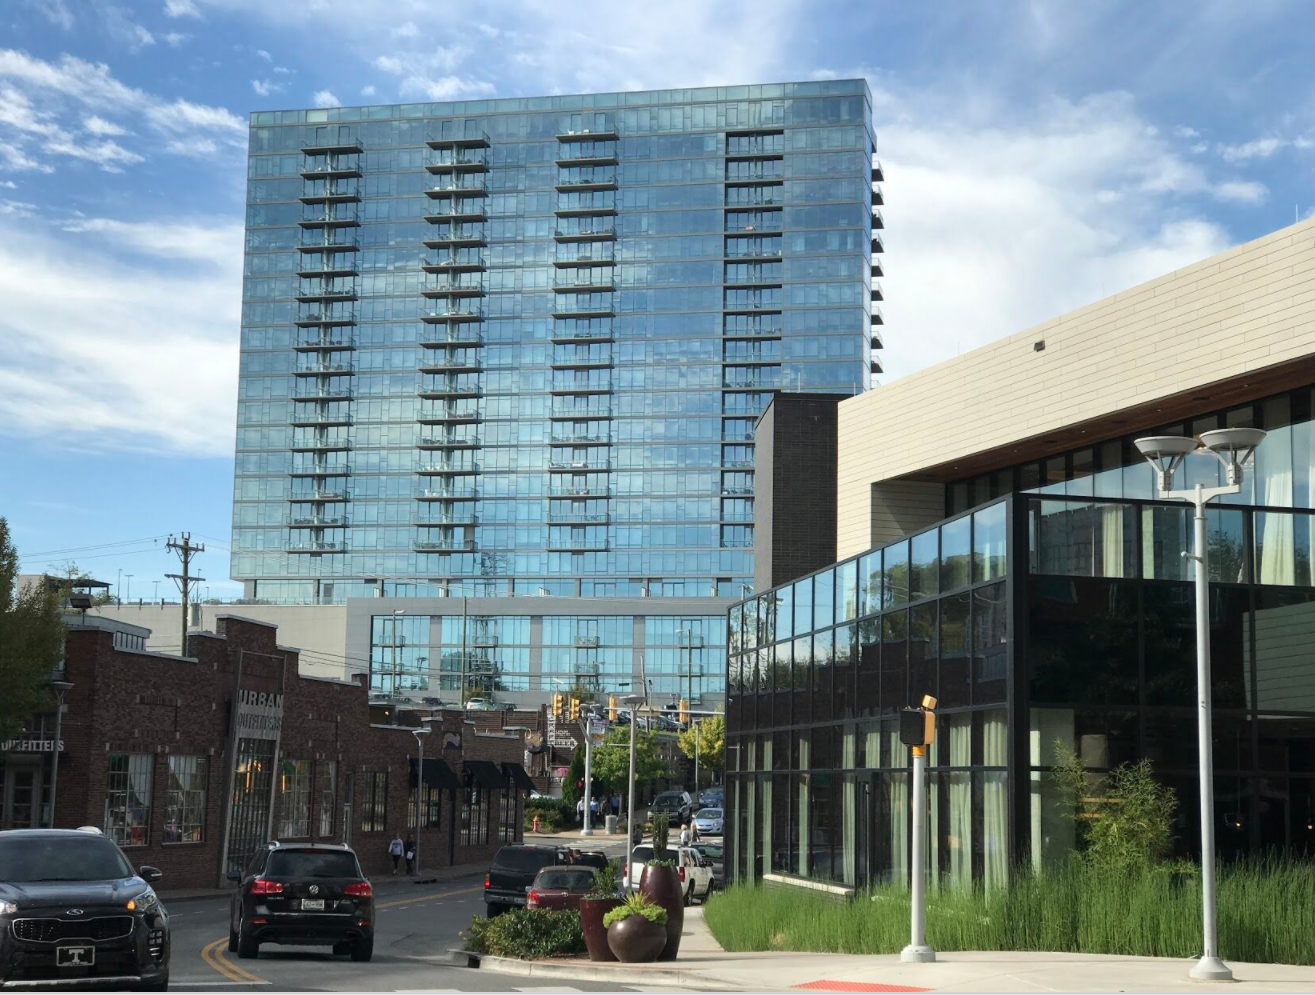 Nashville Gulch district is the equivalent of Calgary's Beltline with a mix of new residential, retail and office development.